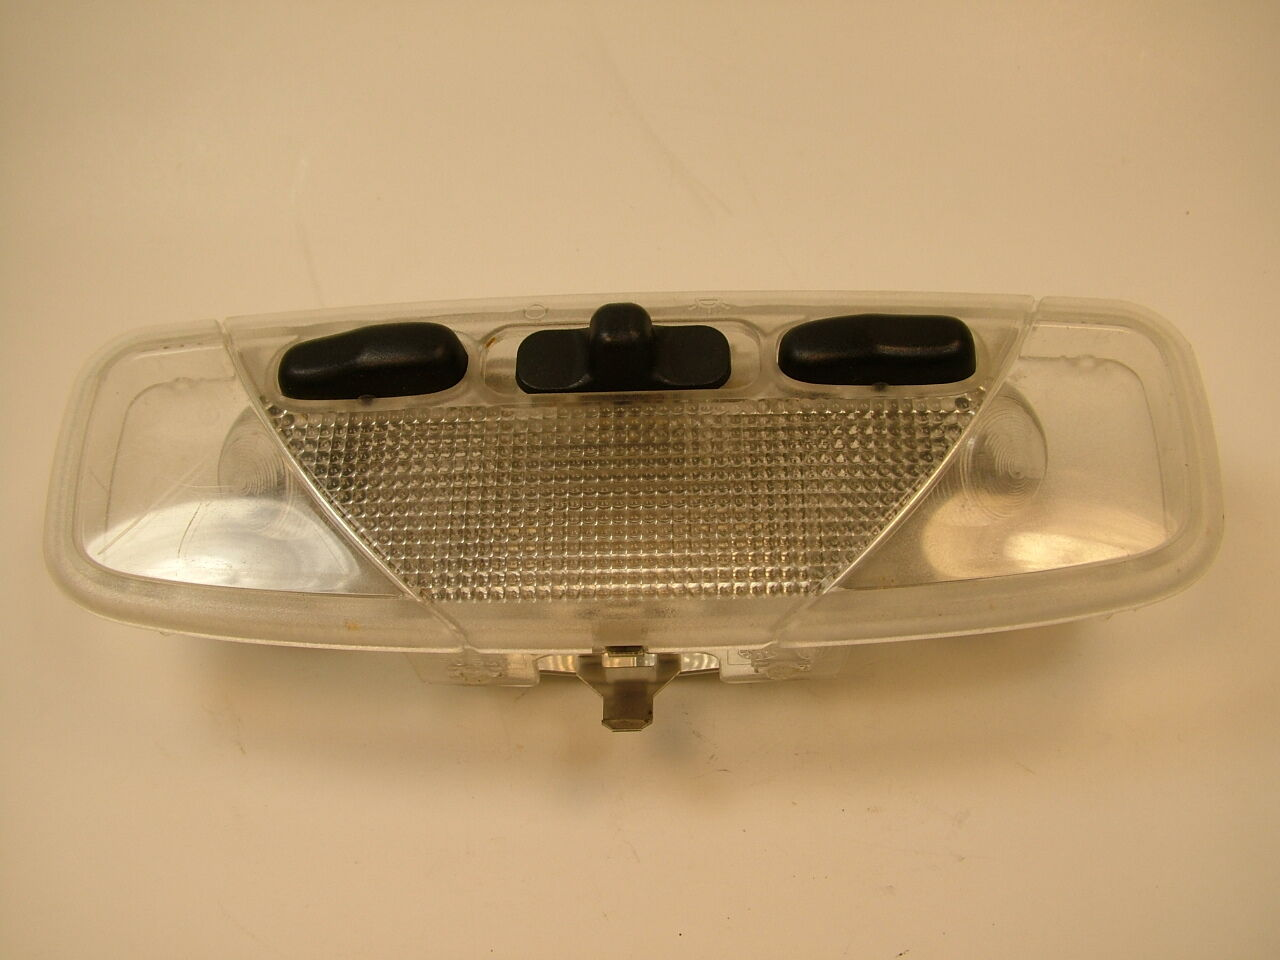 2000 2001 2002 2003 2004 2005 2006 Ford Focus Interior Dome Light Overhead  Oem 1 Of 4FREE Shipping See More